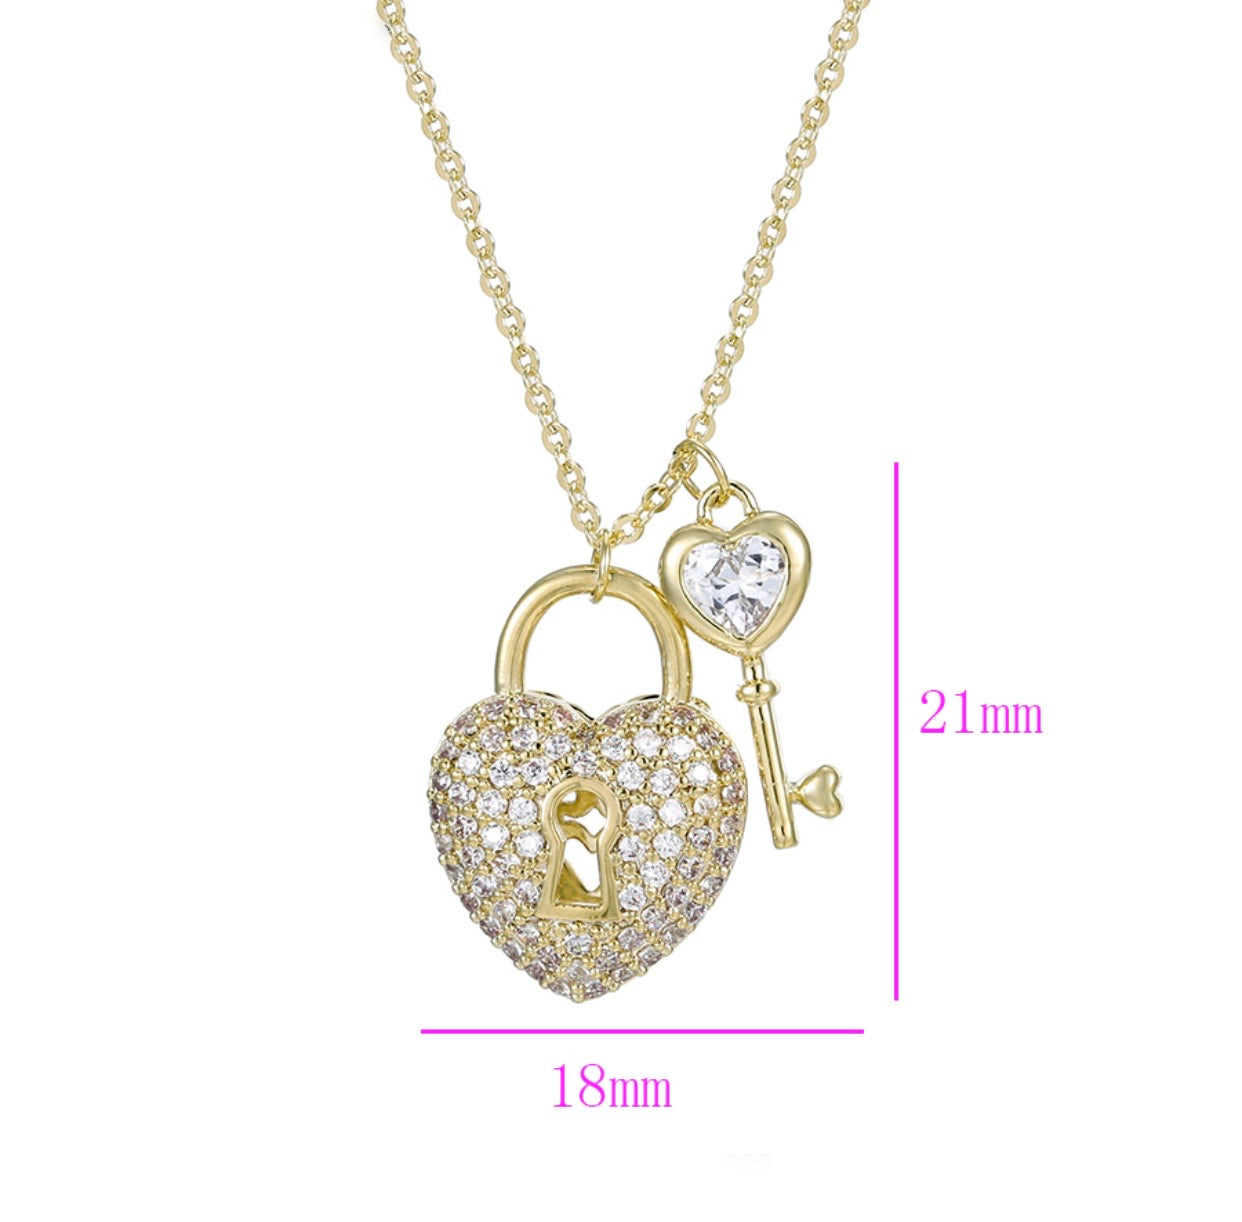 14K Gold Plated Heart & Key Necklace